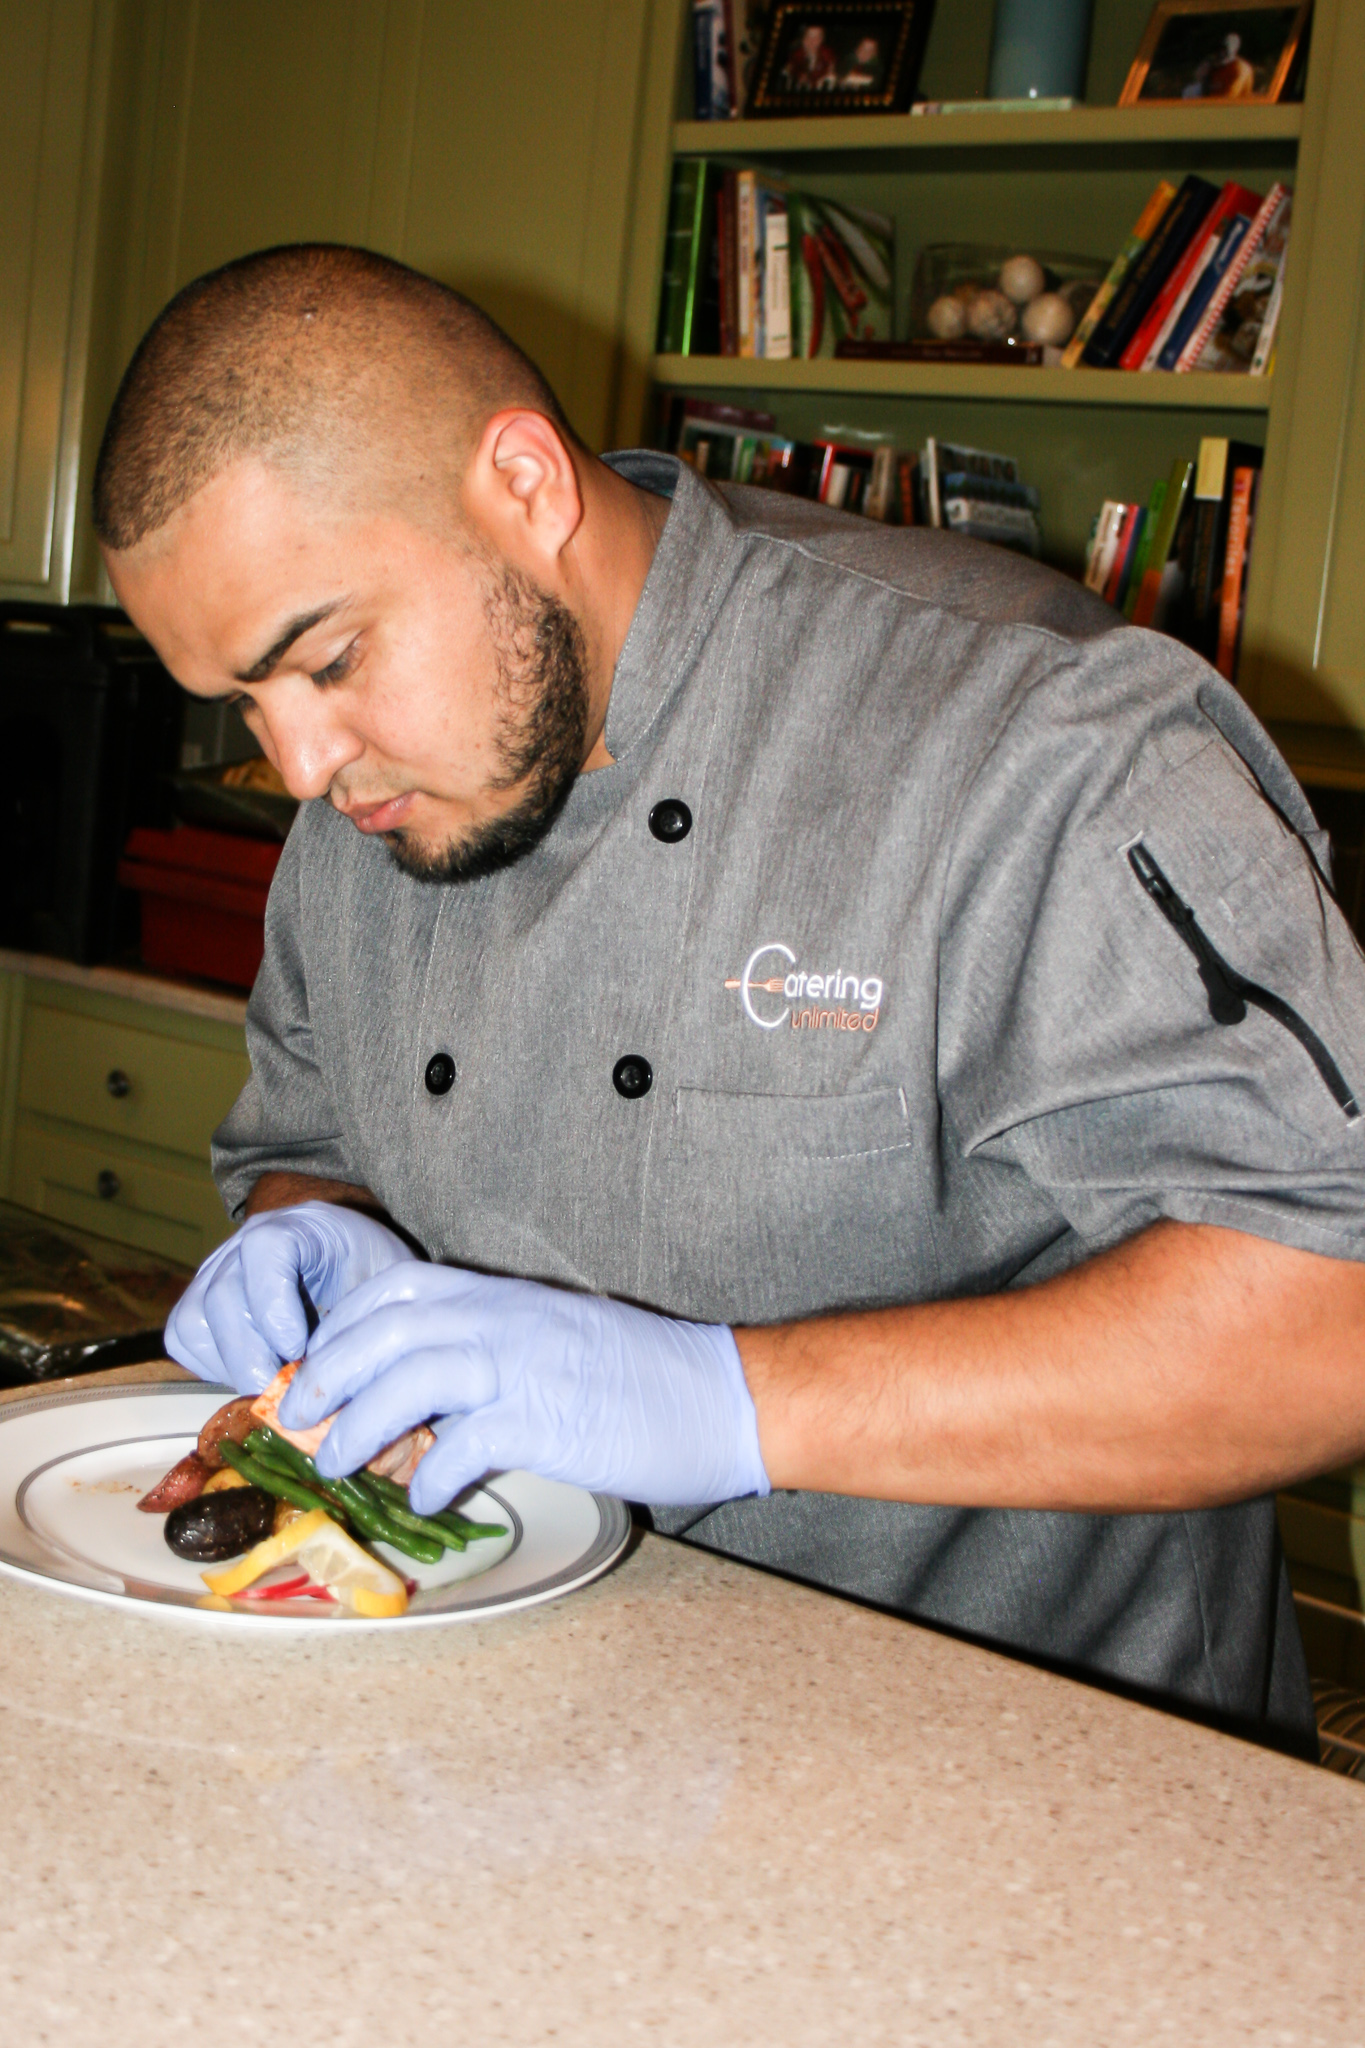 Jaime Flores, Executive Chef - Jaime has been with Catering Unlimited for 10 plus years, and to say that he is the pillar that holds the company up is modest at best. He has a passion for food in all genres and his execution is unsurpassed. Jaime has an eye for detail and coordination that ensures every meal leaving our kitchen is fresh, delicious and presentable. In addition to being a wonderful executive chef, Jaime is a dedicated husband and father to his two great kids!